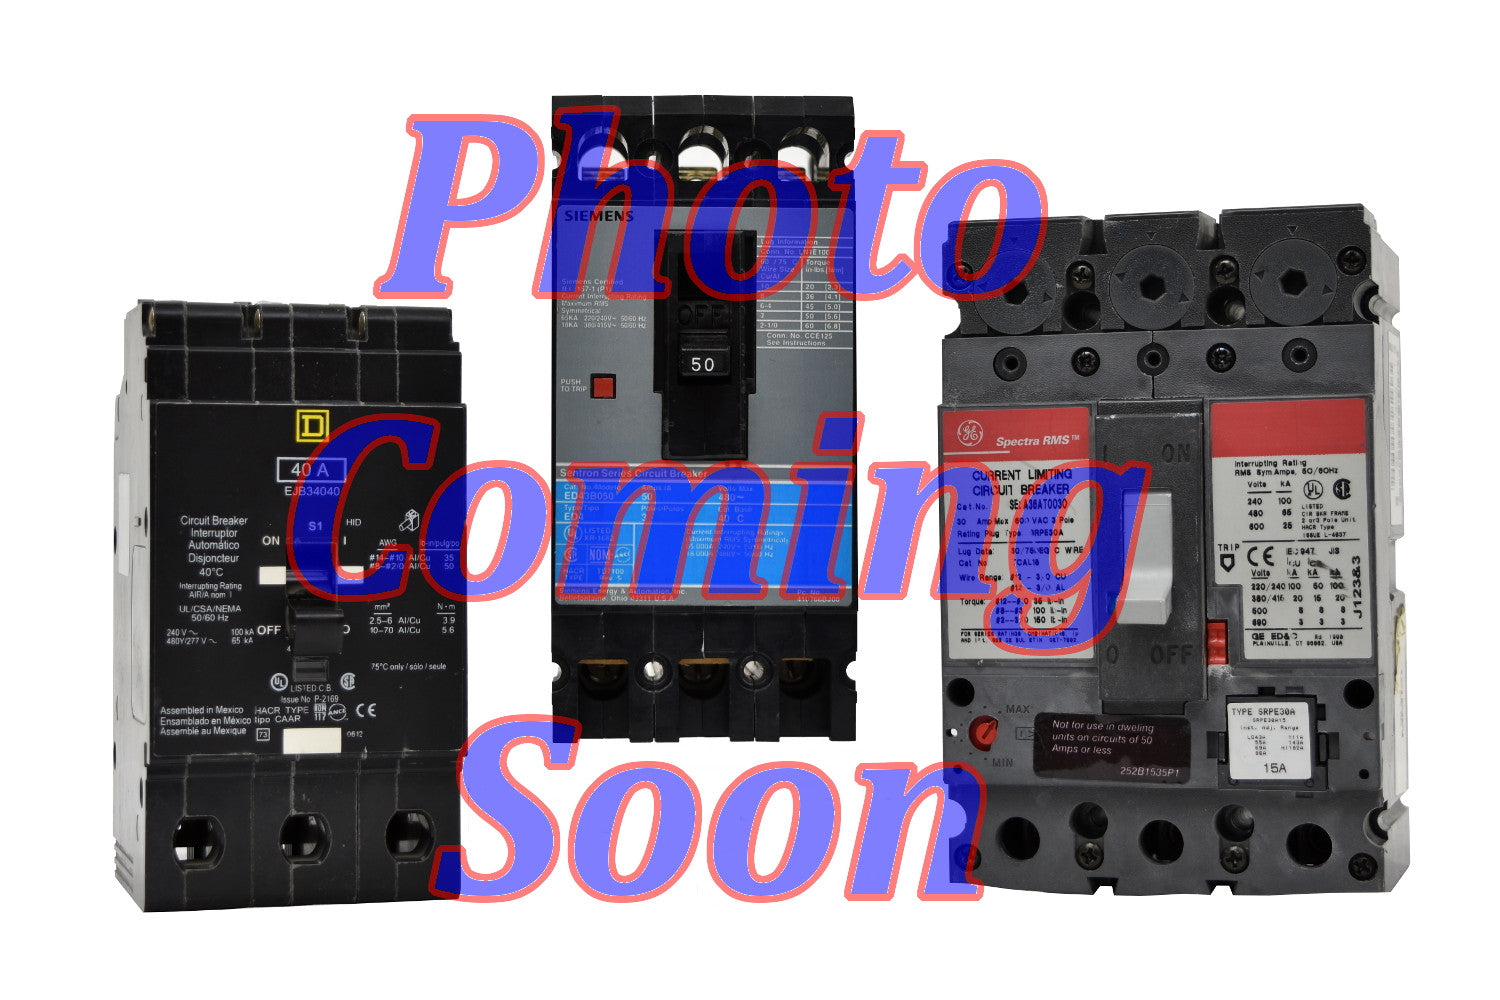 General Electric FCL36TE030R1 Circuit Breakers